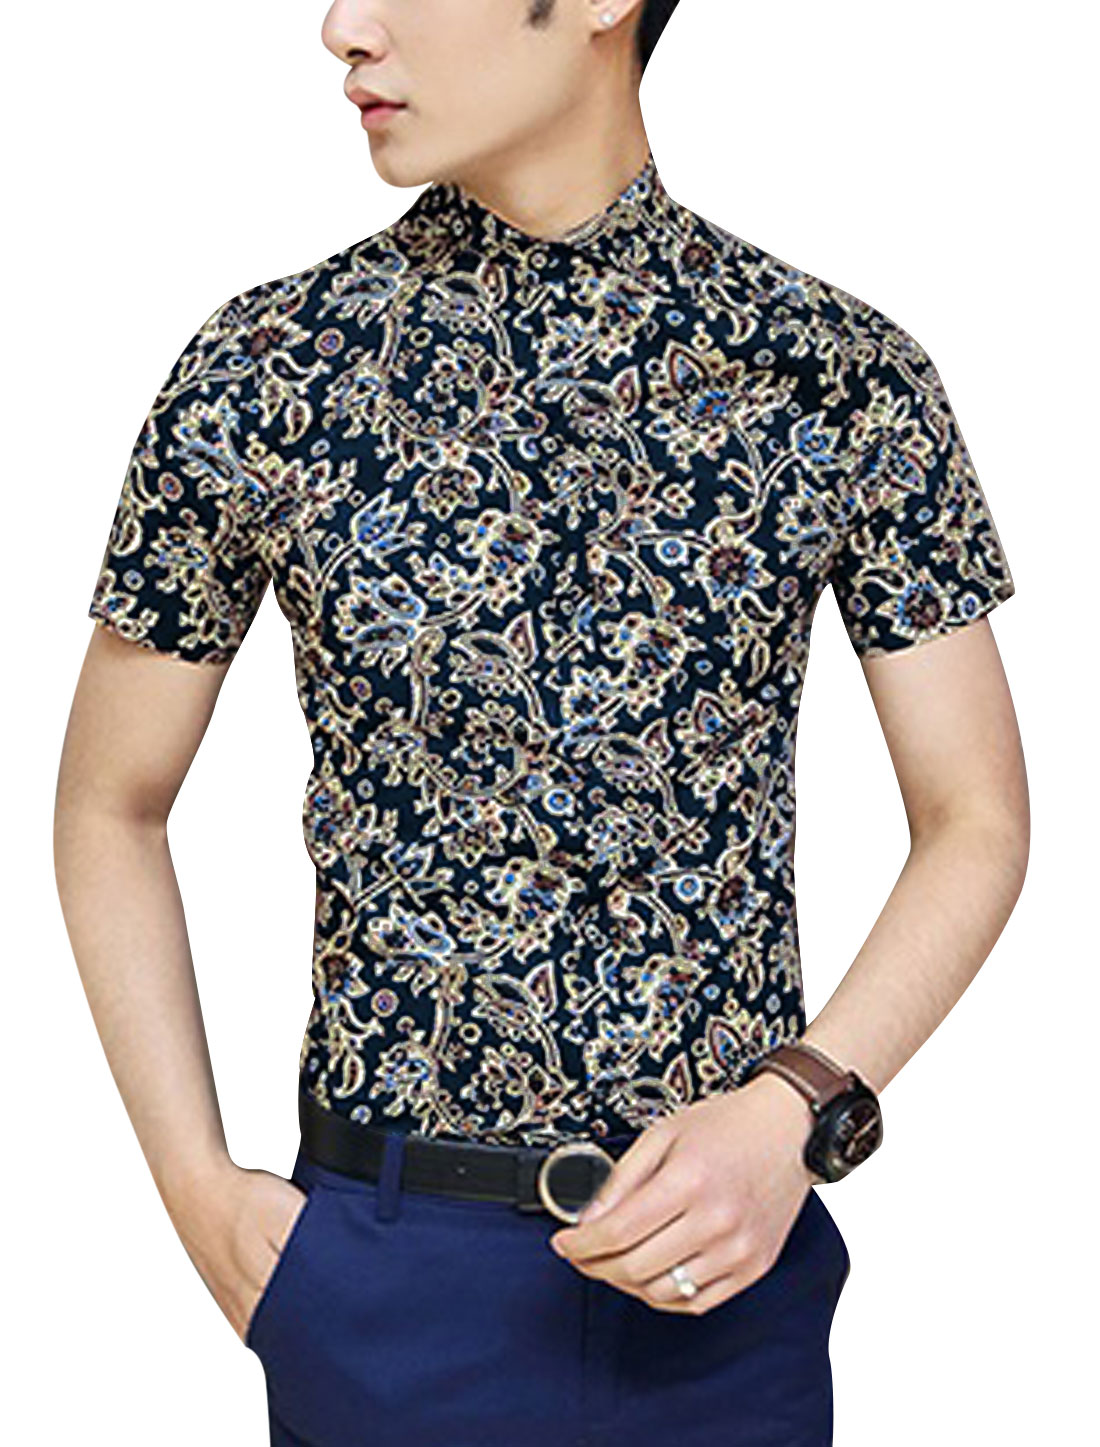 Men Short Sleeve Single Breasted Floral Prints Hawaii Style Shirt Multicolor S